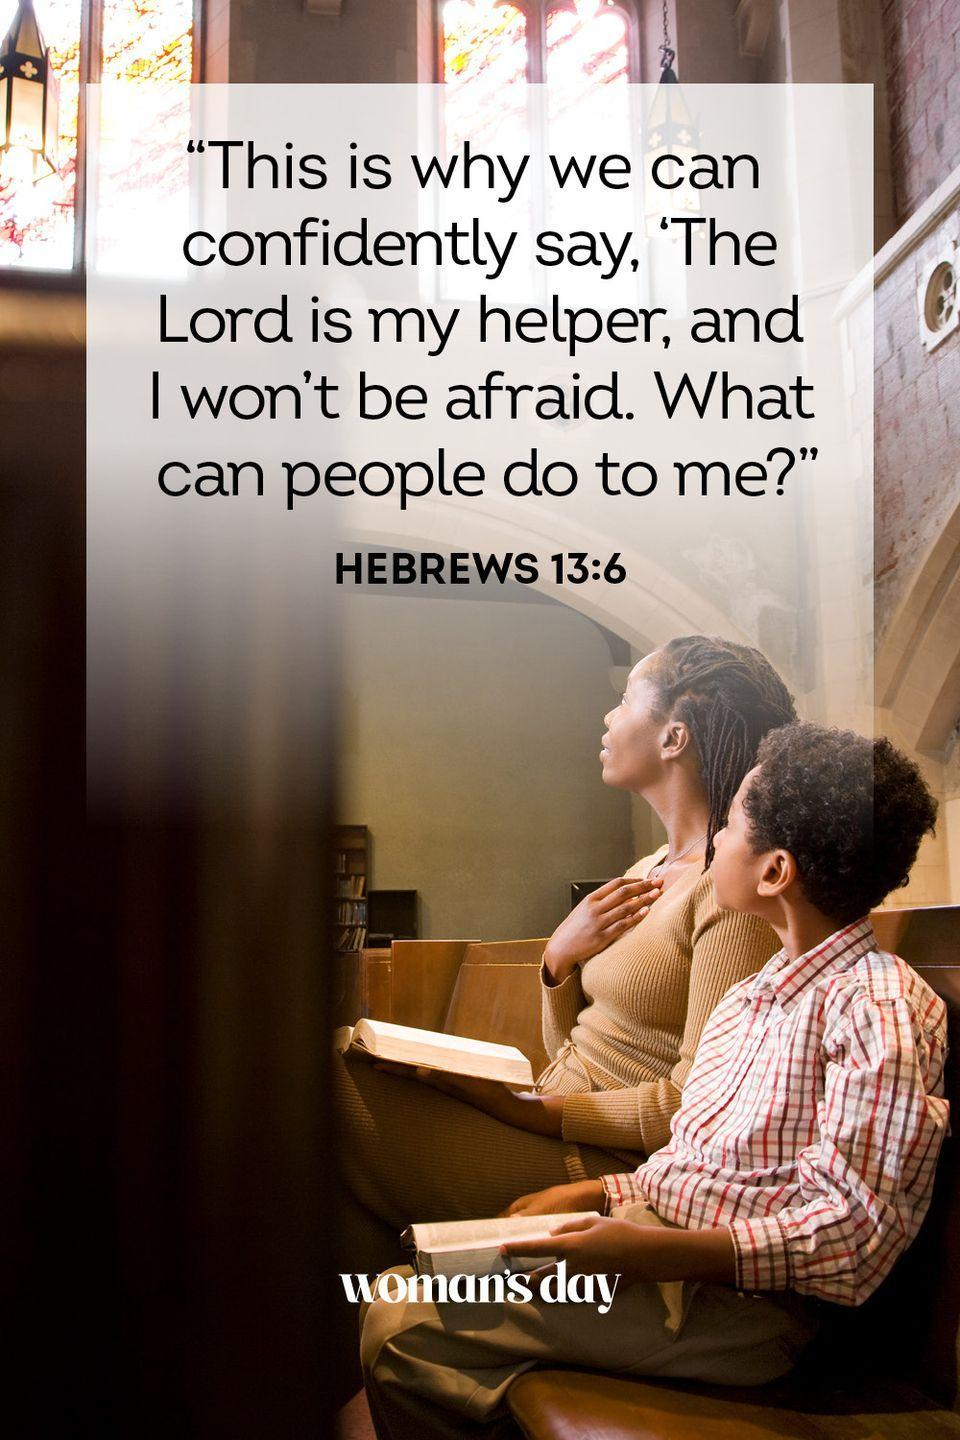 """<p>""""This is why we can confidently say, 'The Lord is my helper, and I won't be afraid. What can people do to me?"""" </p><p><strong>The Good News:</strong> What earthly troubles can hurt you when God is on your side? Your anxiety will never win against Him.</p>"""